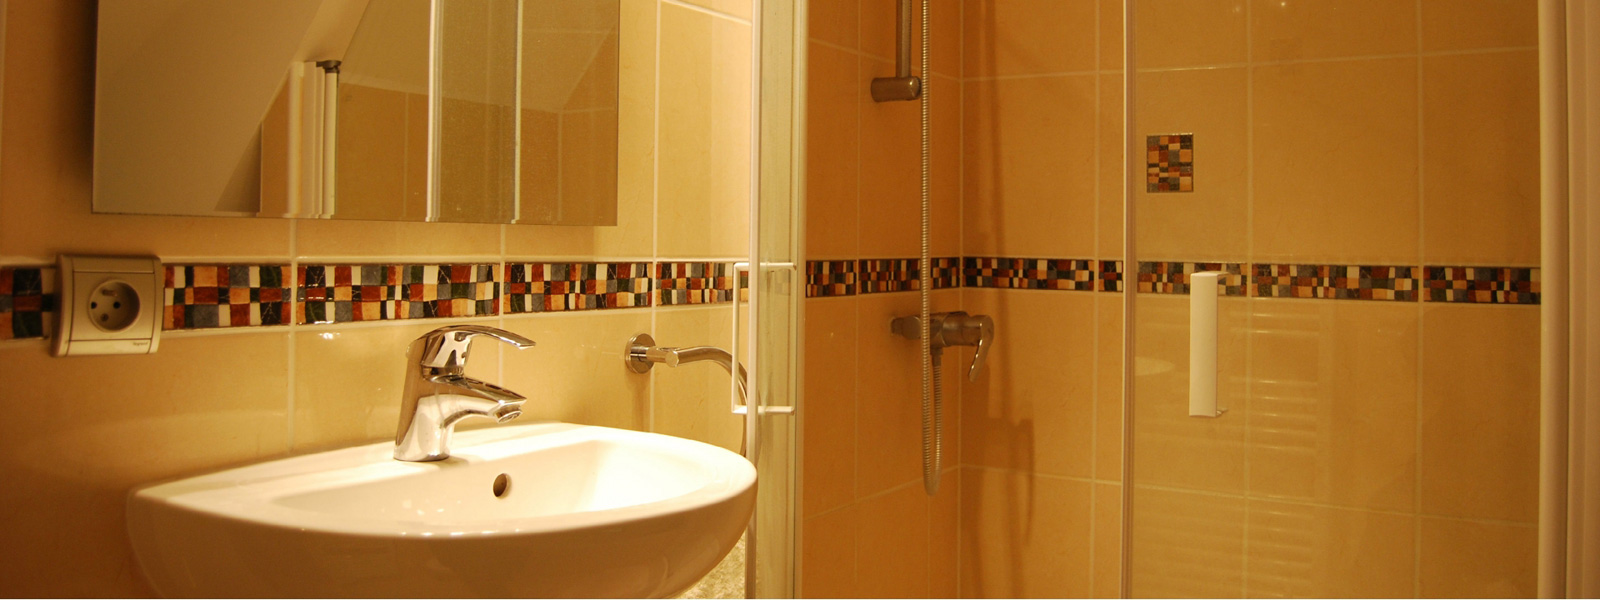 https://www.selectcottages.com/sites/default/files/revslider/image/chaumiere-bathroom-sepia.jpg